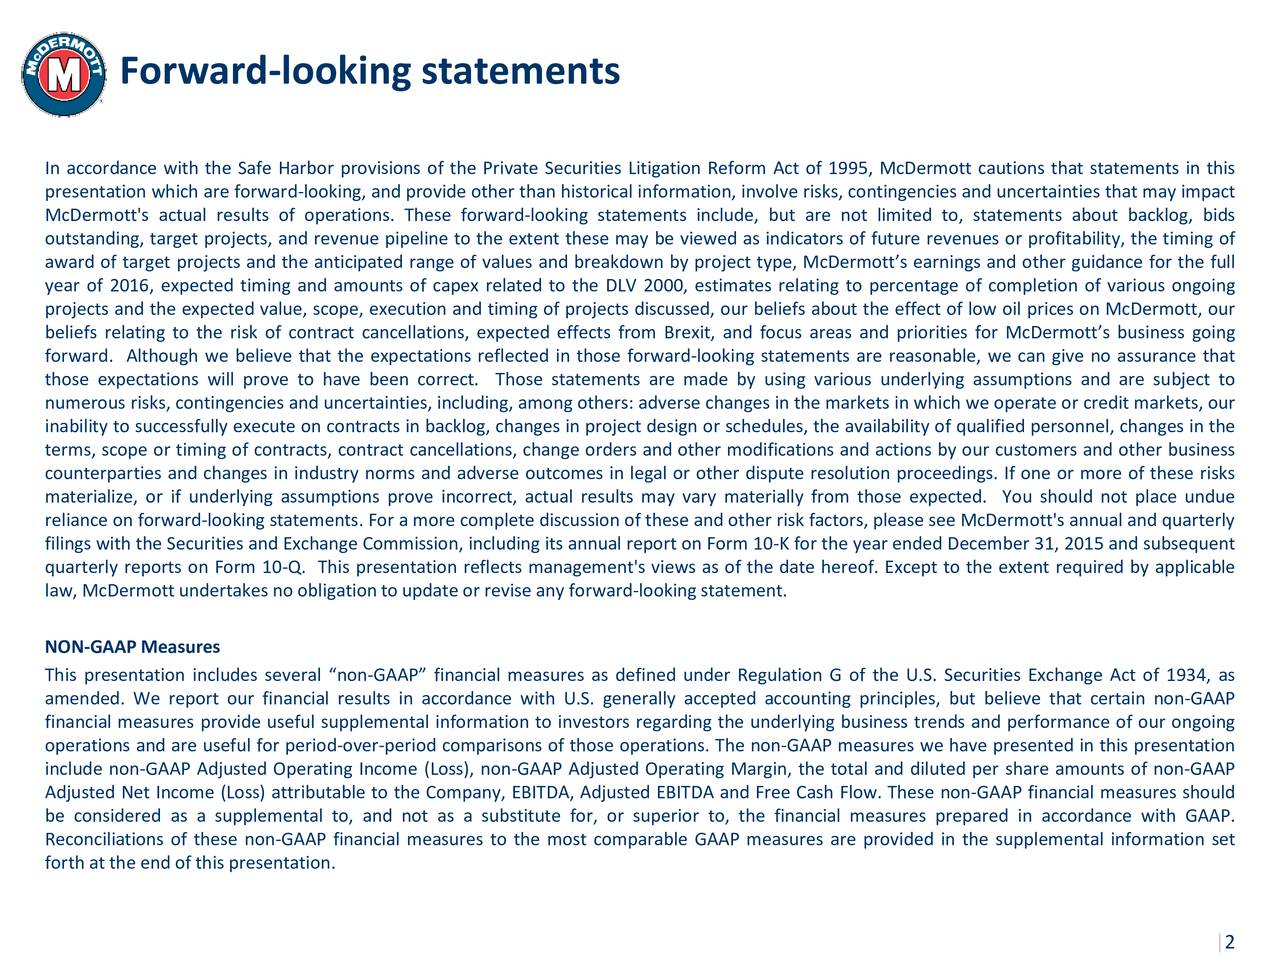 In accordance with the Safe Harbor provisions of the Private Securities Litigation Reform Act of 1995, McDermott cautions that statements in this presentation which are forward-looking, and provide other than historical information, involve risks, contingencies and uncertainties that may impact McDermott's actual results of operations. These forward-looking statements include, but are not limited to, statements about backlog, bids outstanding, target projects, and revenue pipeline to the extent these may be viewed as indicators of future revenues or profitability, the timing of award of target projects and the anticipated range of values and breakdown by project type, McDermotts earnings and other guidance for the full year of 2016, expected timing and amounts of capex related to the DLV 2000, estimates relating to percentage of completion of various ongoing projects and the expected value, scope, execution and timing of projects discussed, our beliefs about the effect of low oil prices on McDermott, our beliefs relating to the risk of contract cancellations, expected effects from Brexit, and focus areas and priorities for McDermotts business going forward. Although we believe that the expectations reflected in those forward-looking statements are reasonable, we can give no assurance that those expectations will prove to have been correct. Those statements are made by using various underlying assumptions and are subject to numerous risks, contingencies and uncertainties, including, among others: adverse changes in the markets in which we operate or credit markets, our inability to successfully execute on contracts in backlog, changes in project design or schedules, the availability of qualified personnel, changes in the terms, scope or timing of contracts, contract cancellations, change orders and other modifications and actions by our customers and other business counterparties and changes in industry norms and adverse outcomes in legal or other dispute resolution 